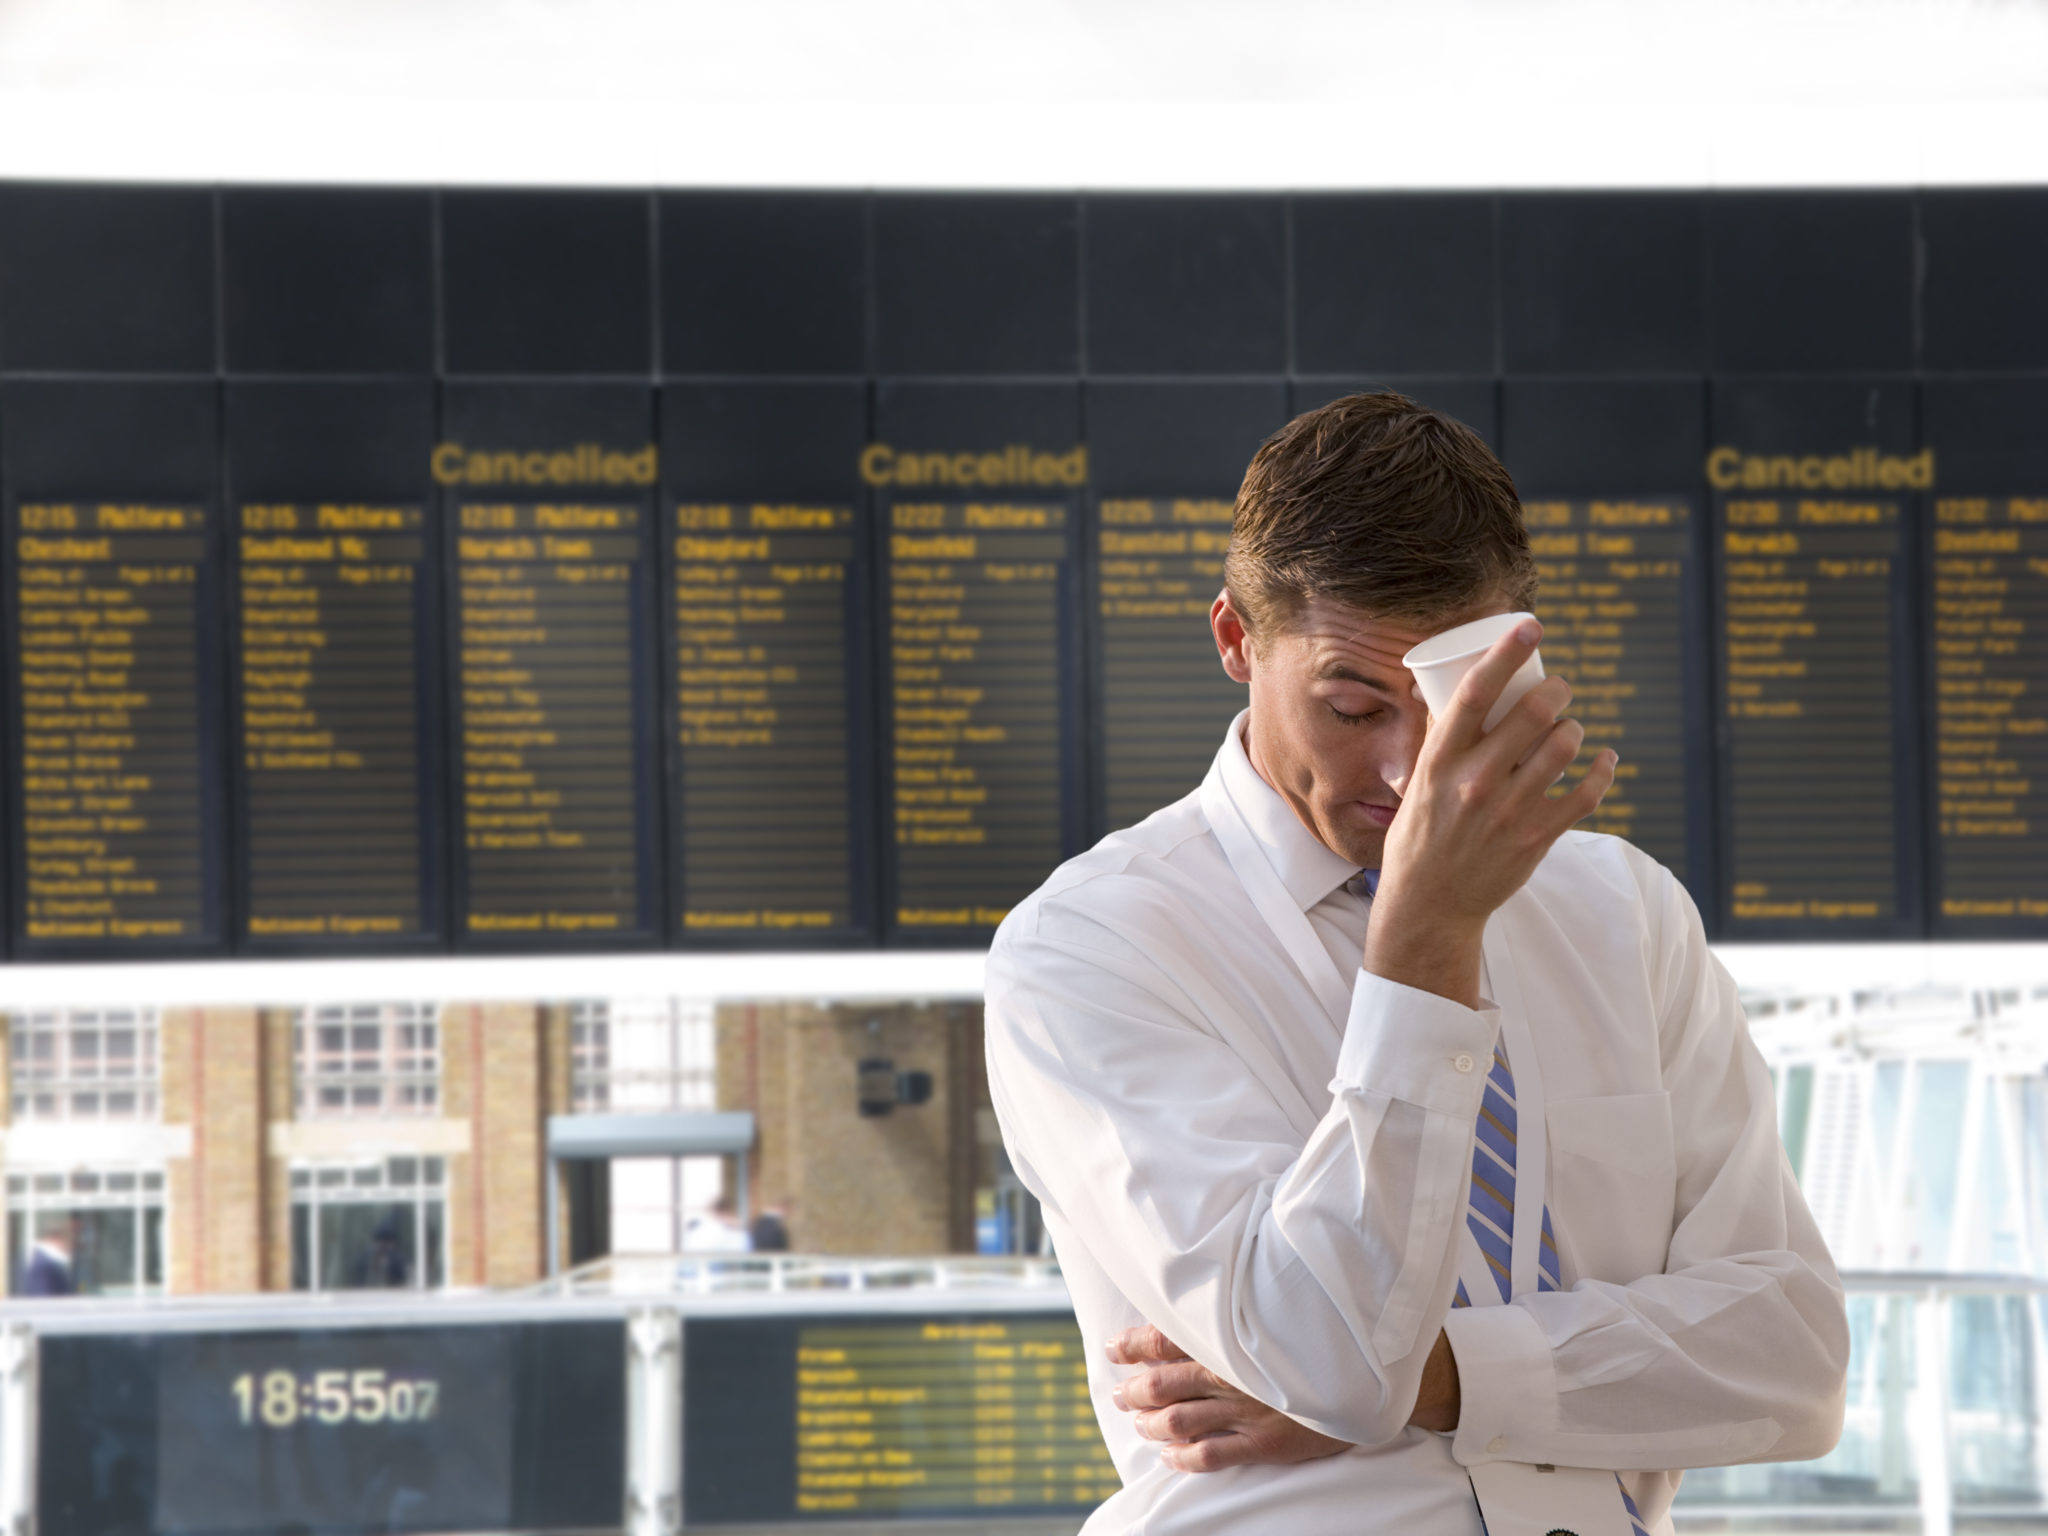 How to Get Compensation When Your Flight Is Dela [or Canceled] Why Was Off The Map Cancelled on